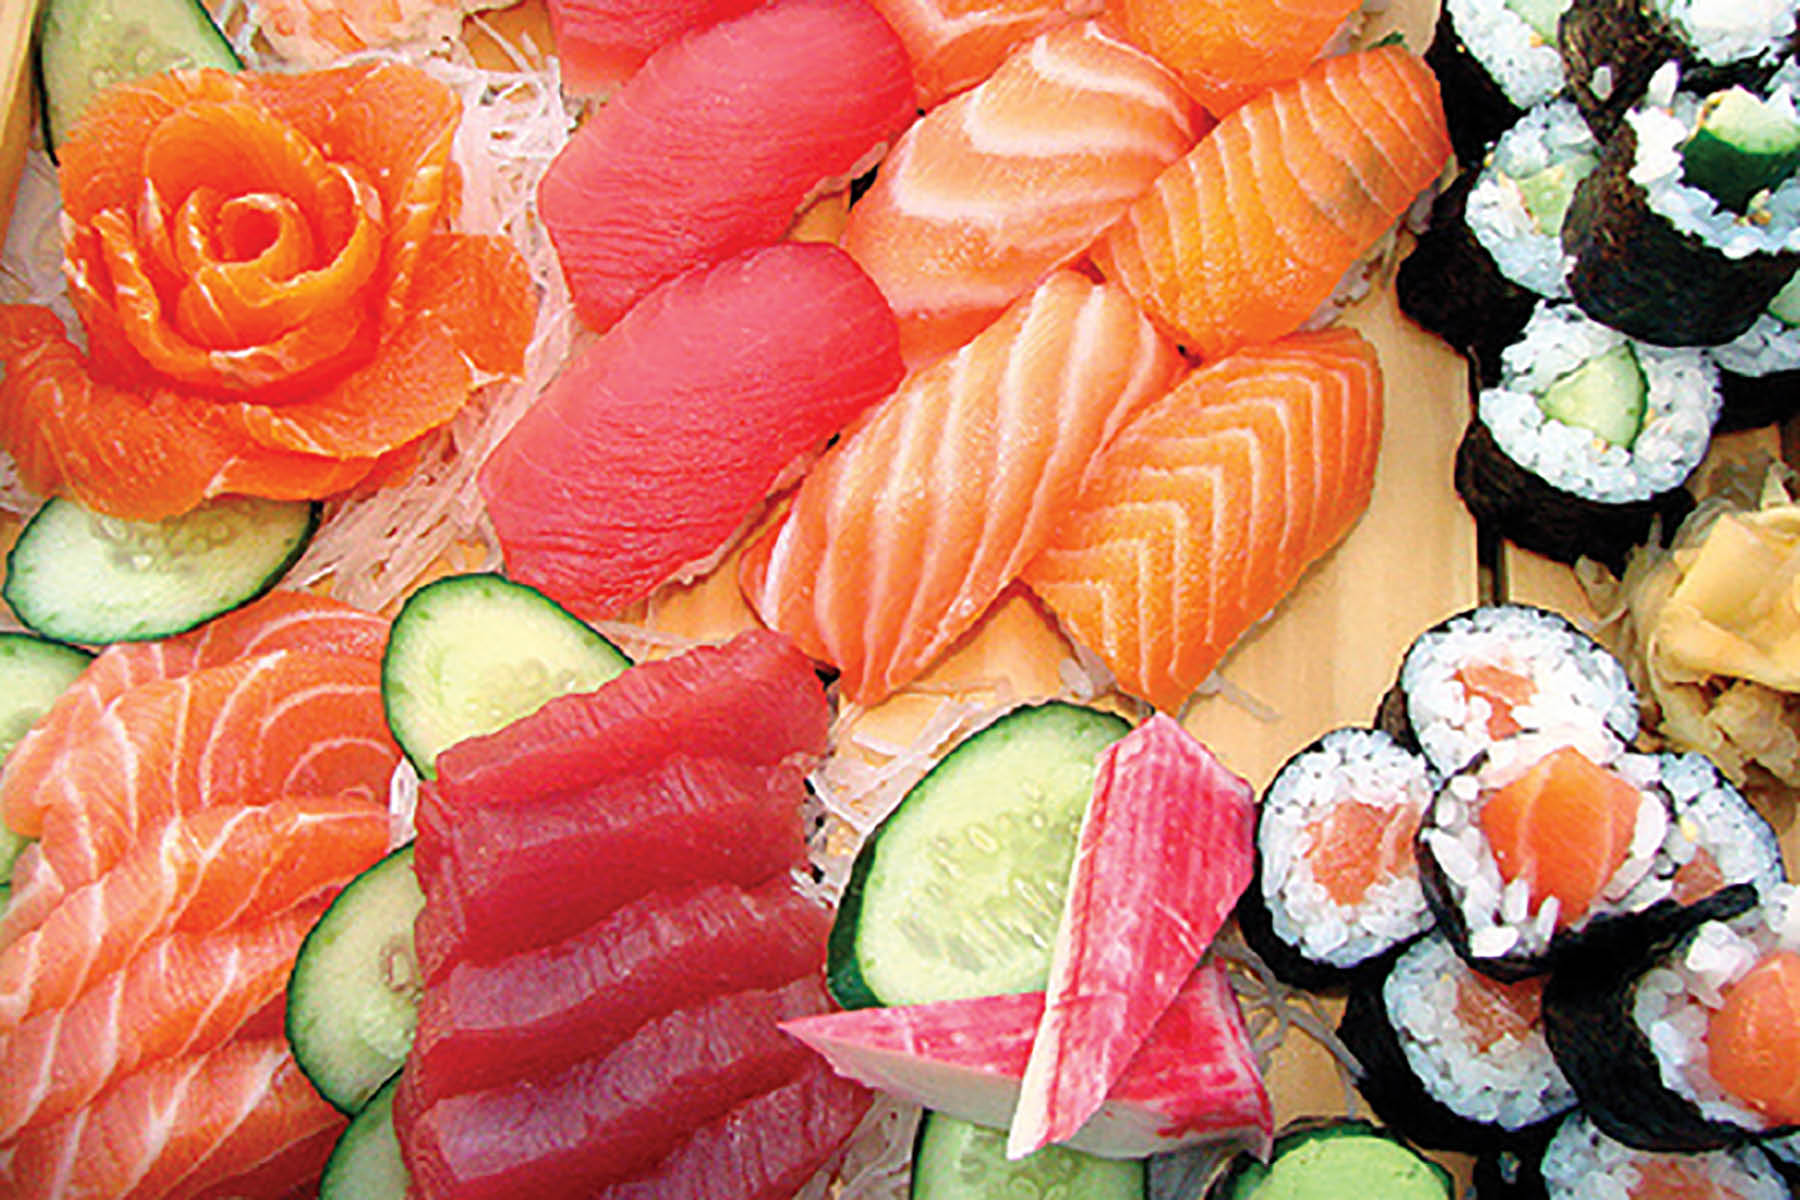 sushi; osaka grill and supreme buffet located in crofton, maryland